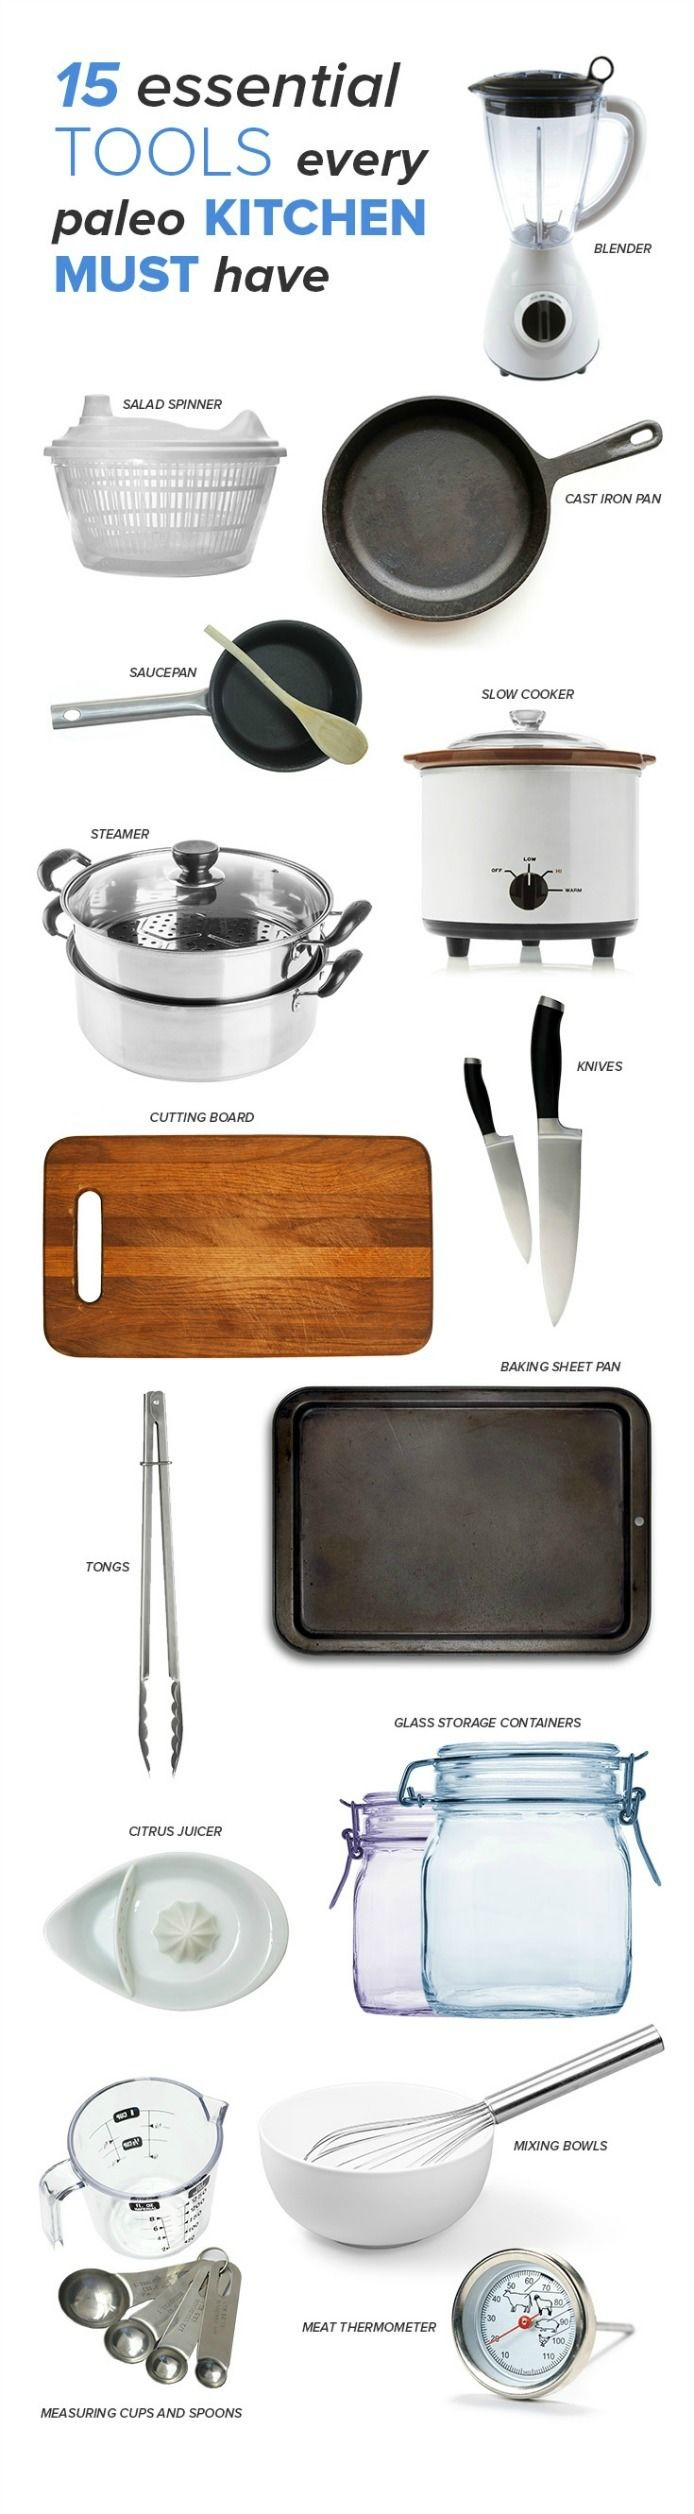 kitchen-tools.jpg